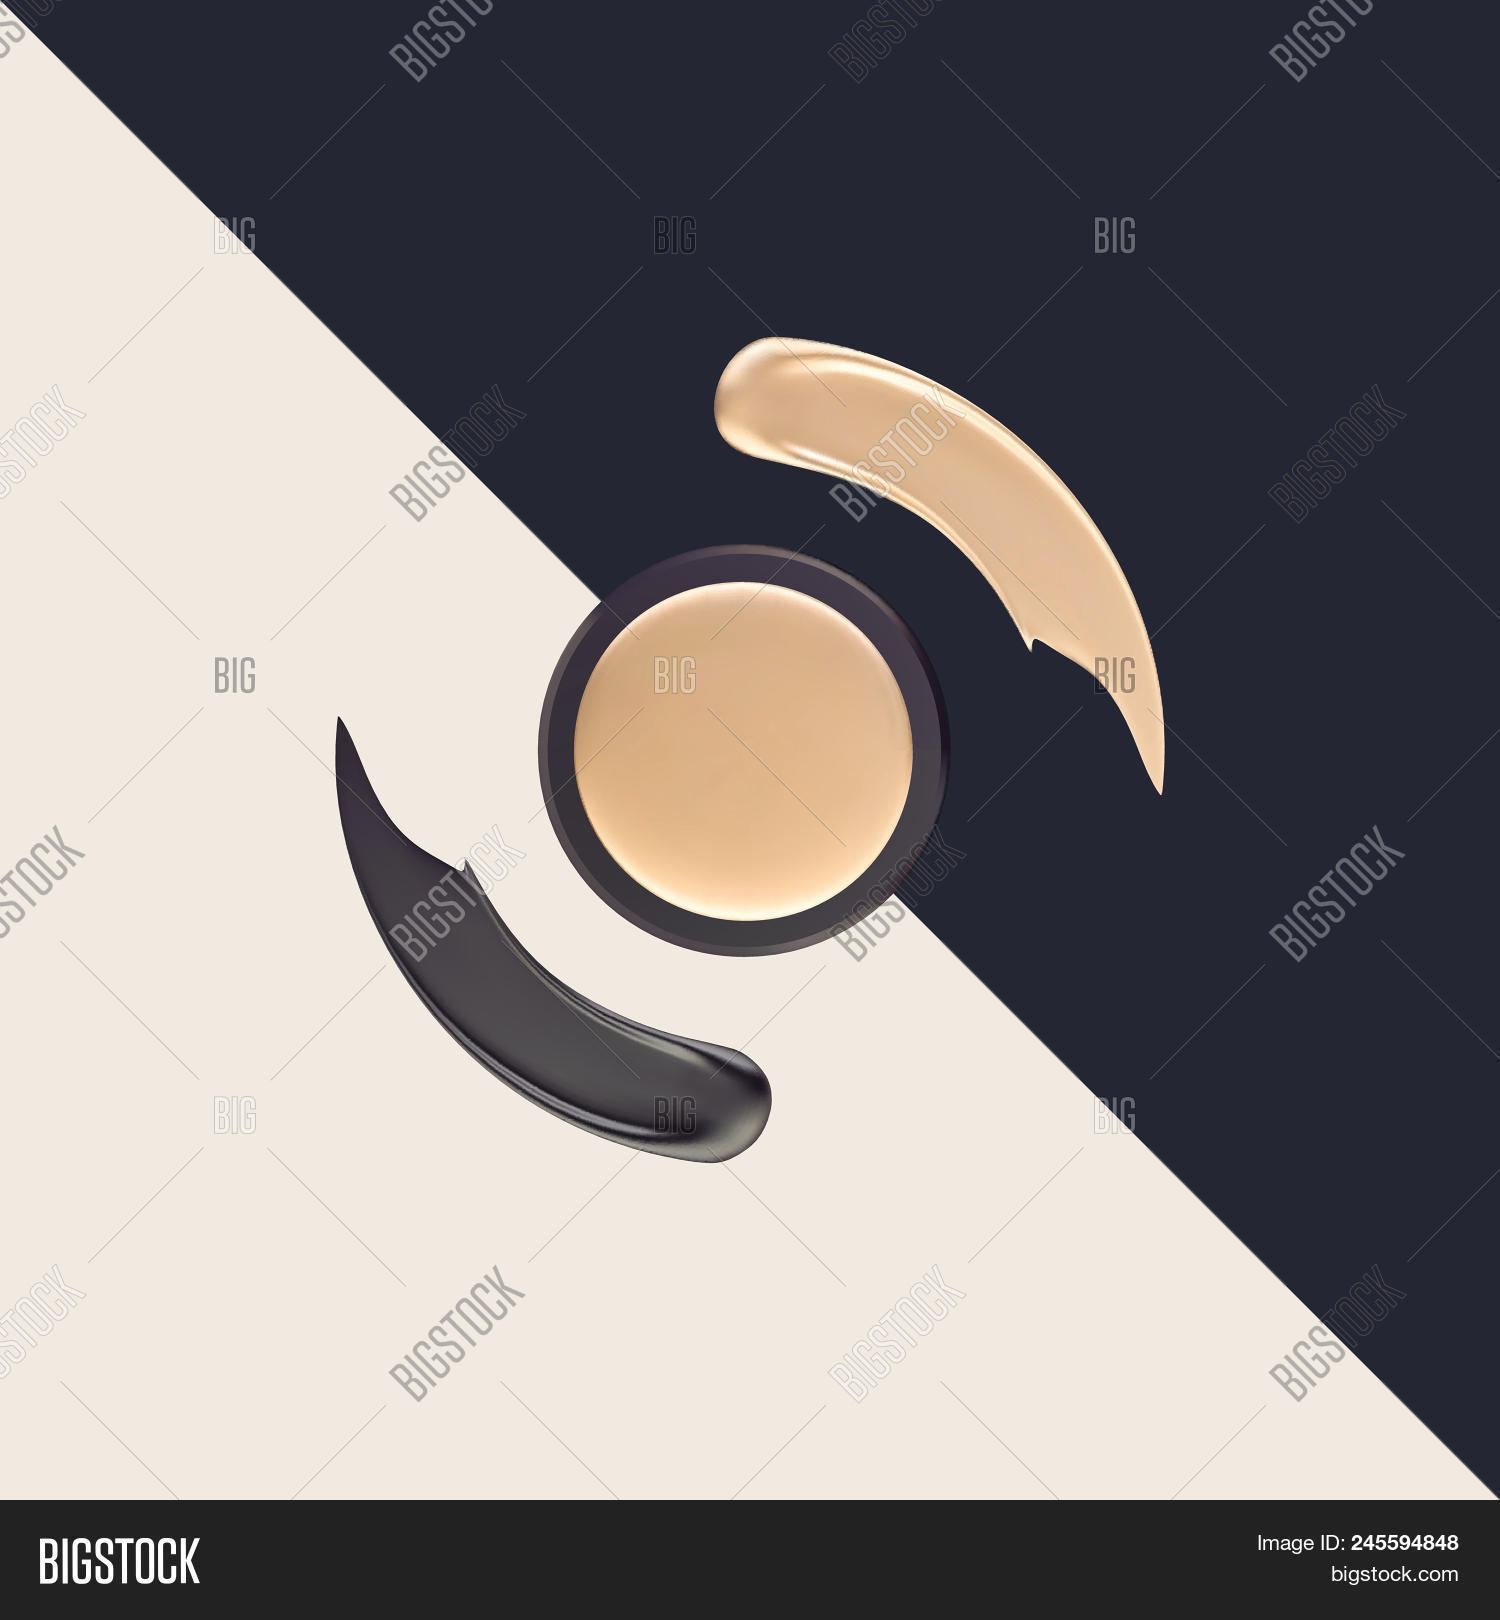 Makeup Smear Logo  Vector & Photo (Free Trial) | Bigstock